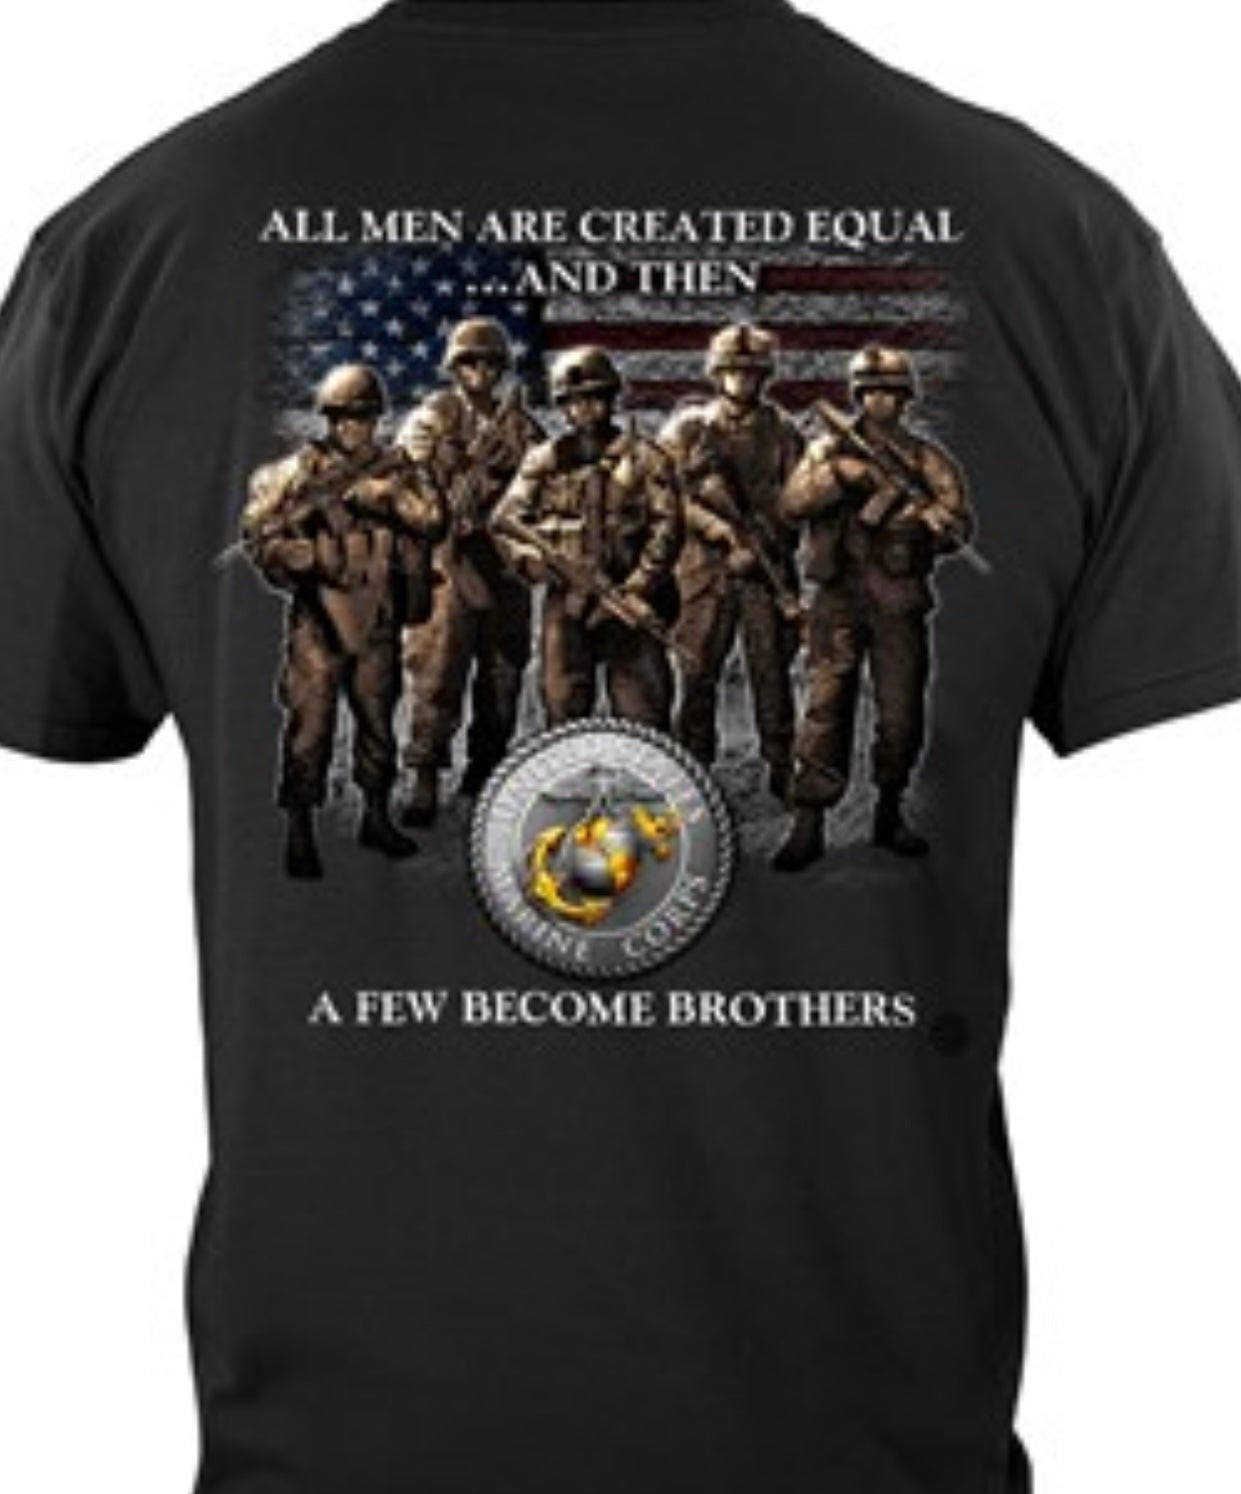 MARINE BROTHERHOOD - The Wall Kids, Inc.